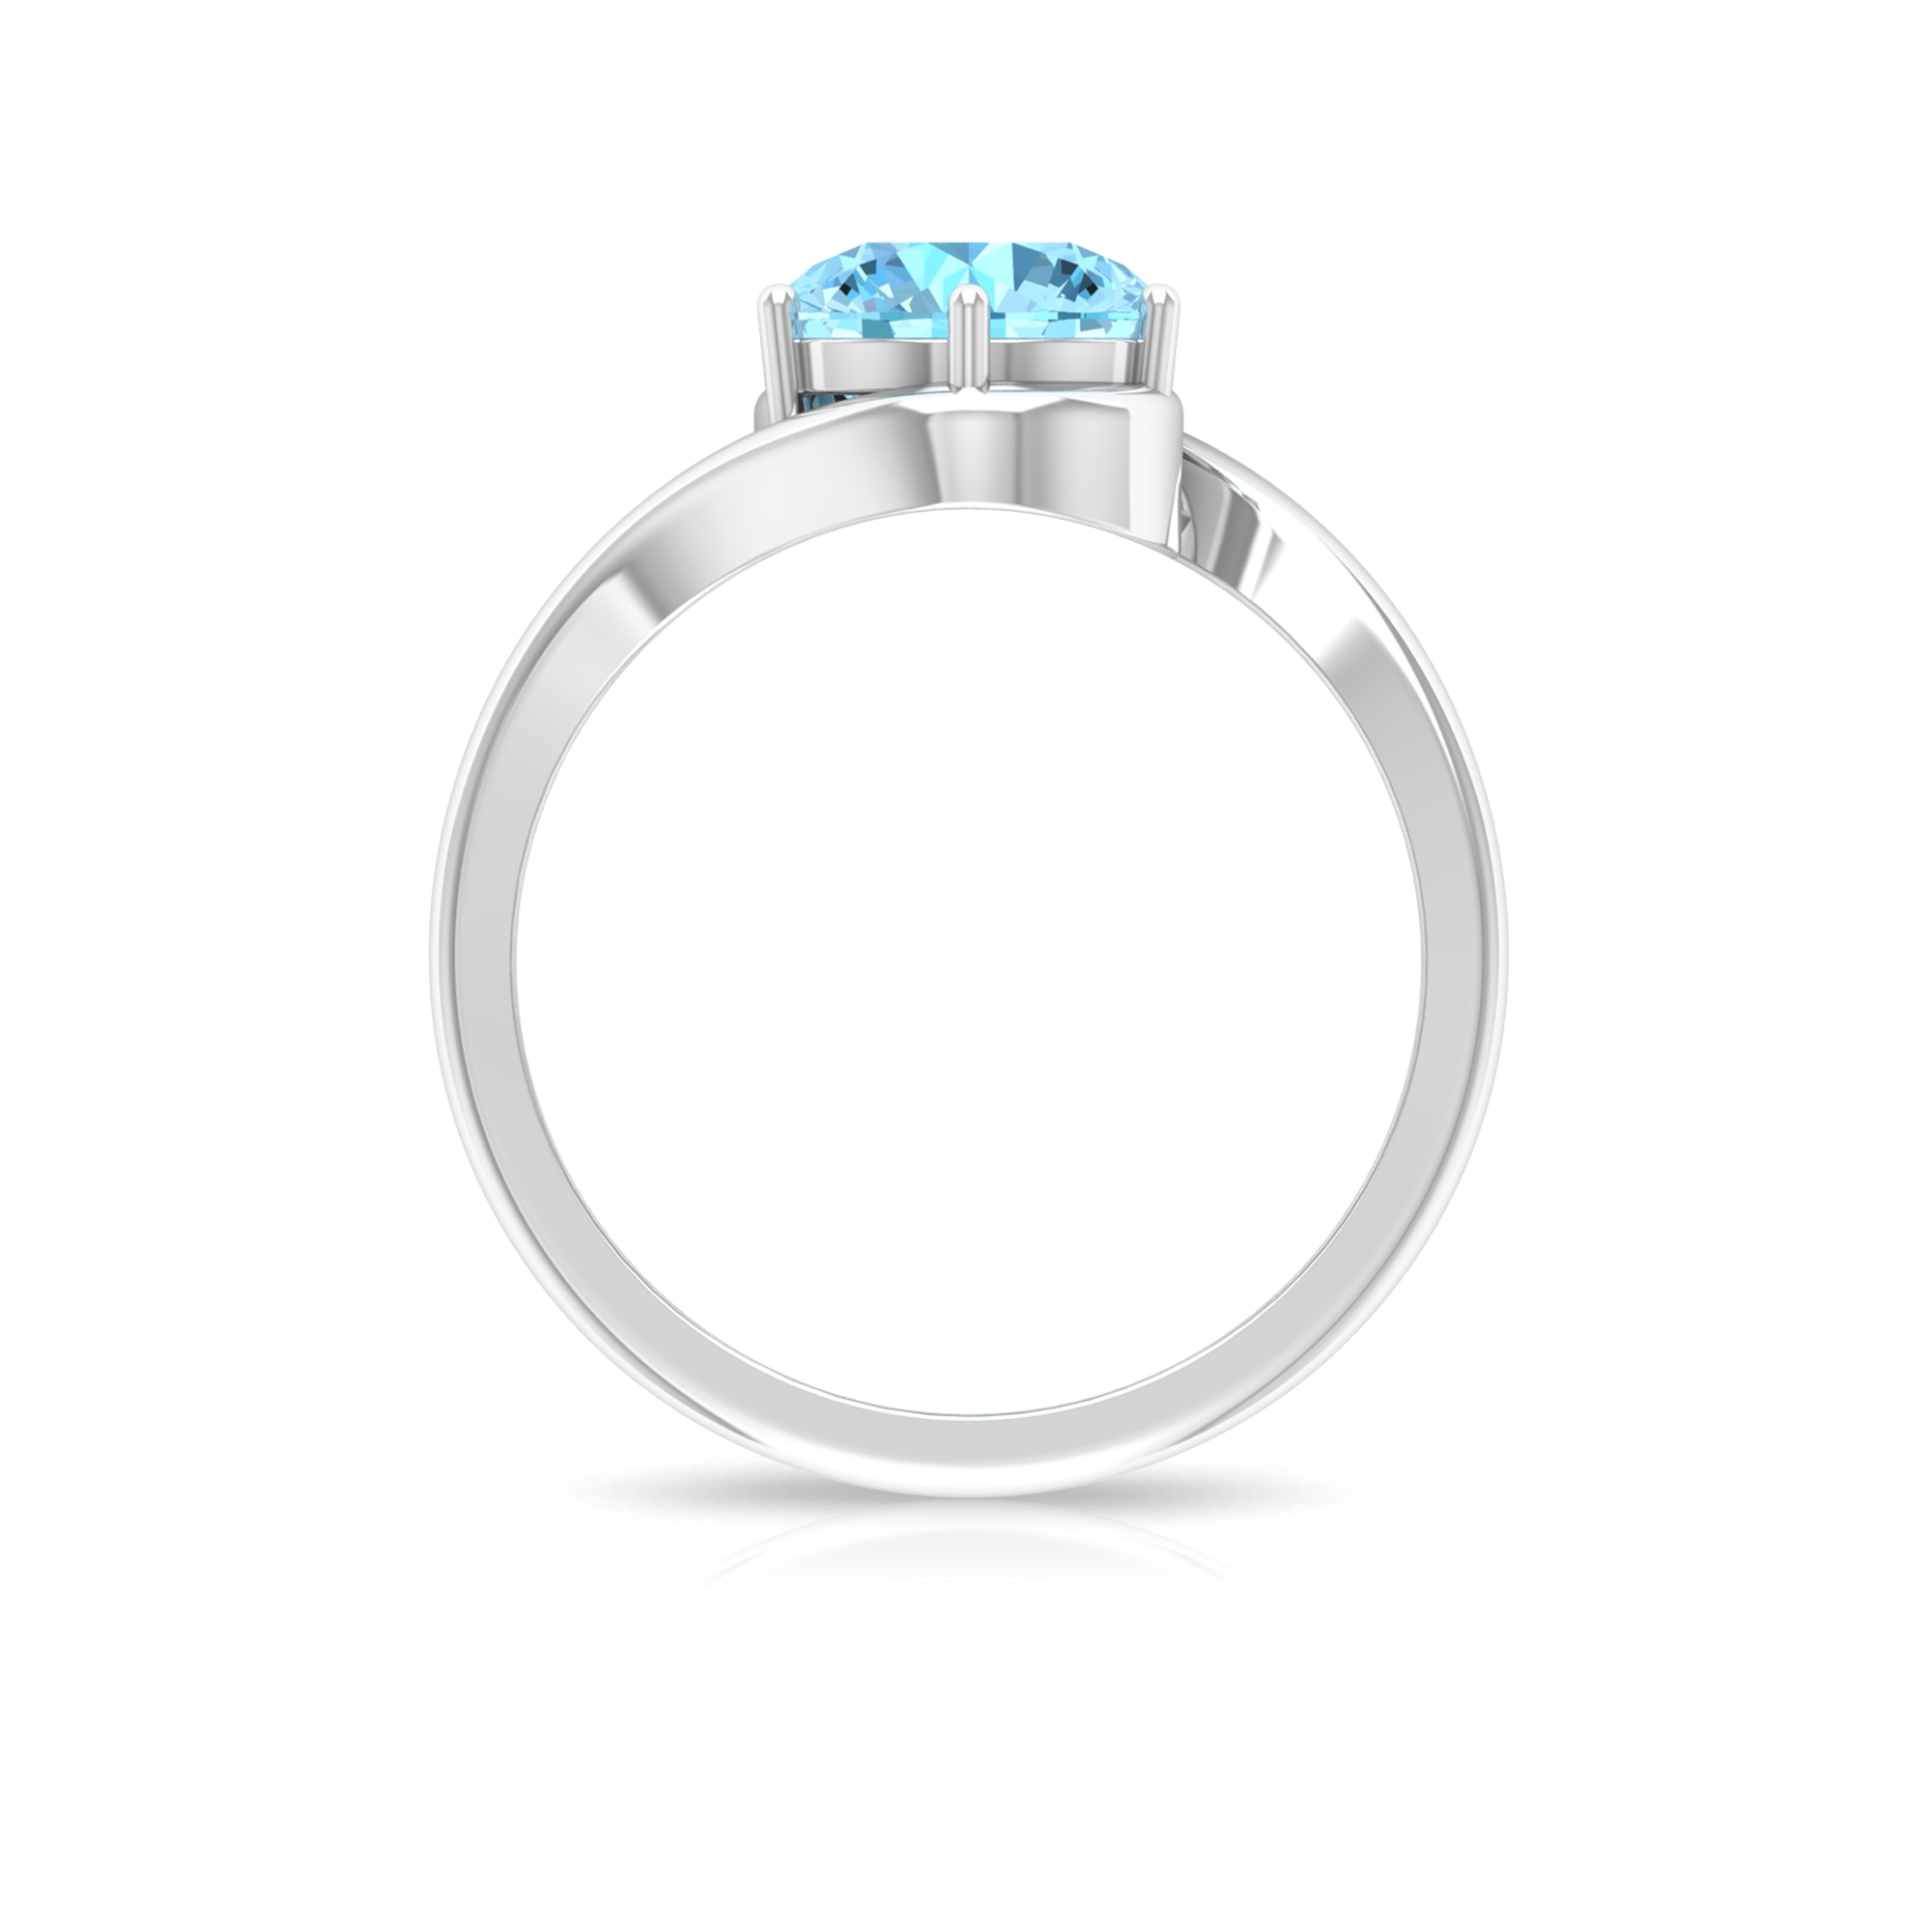 8 MM Round Cut Aquamarine Solitaire Six Prong Set Ring with Bypass Shank